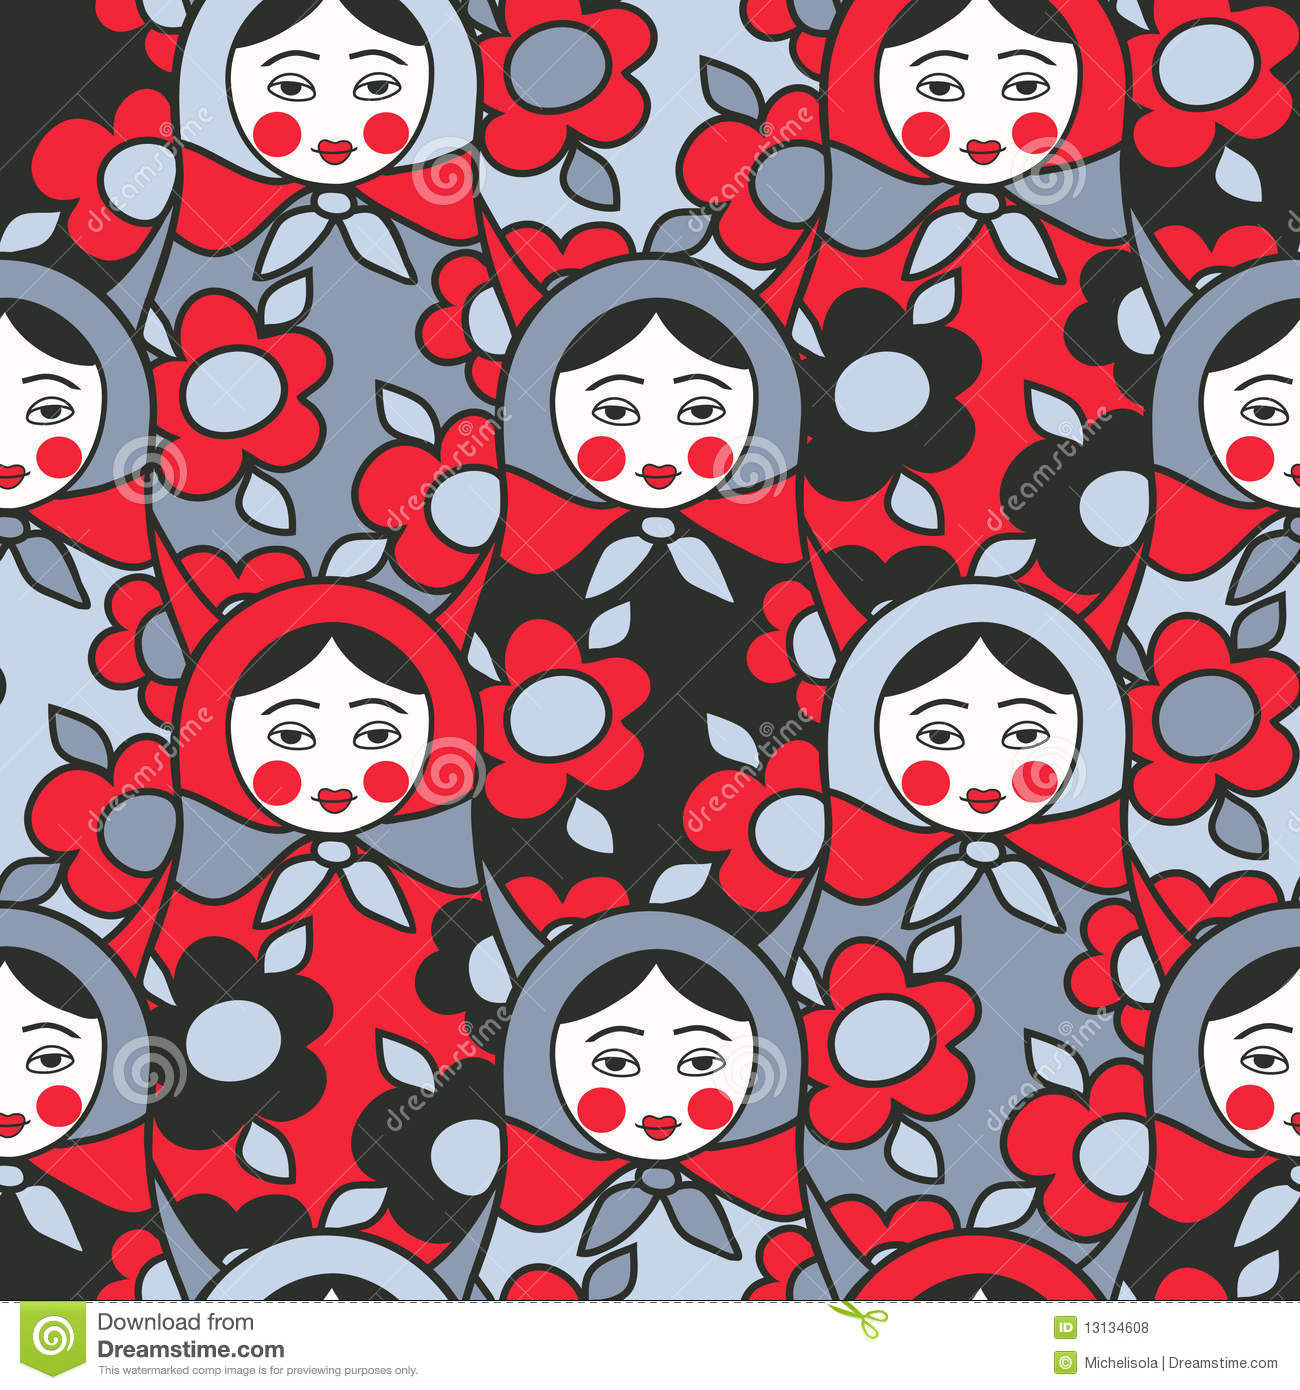 Matryoshka dolls - seamless pattern of Russian ne